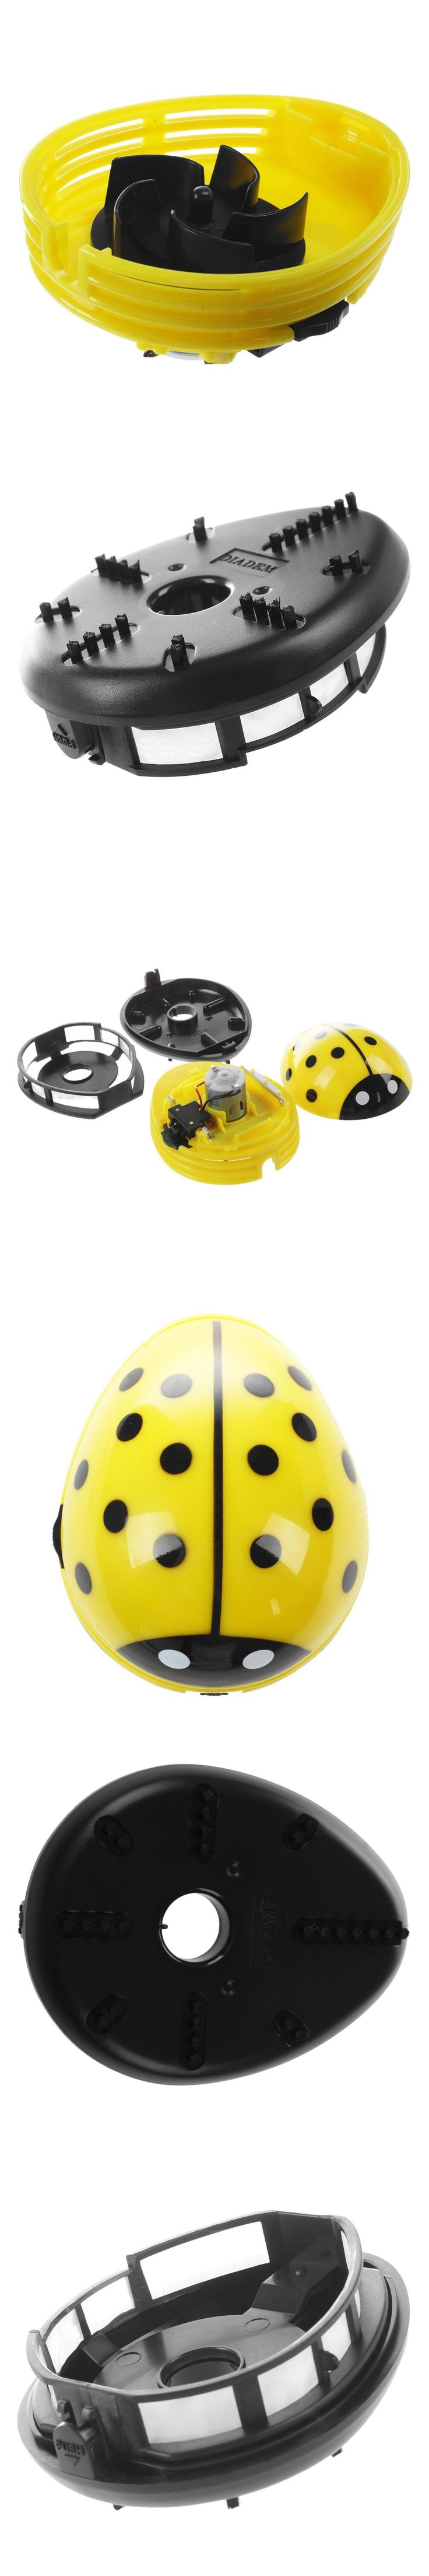 ladybird pattern battery operated table vacuum cleaner mini dust cleaner, yellow